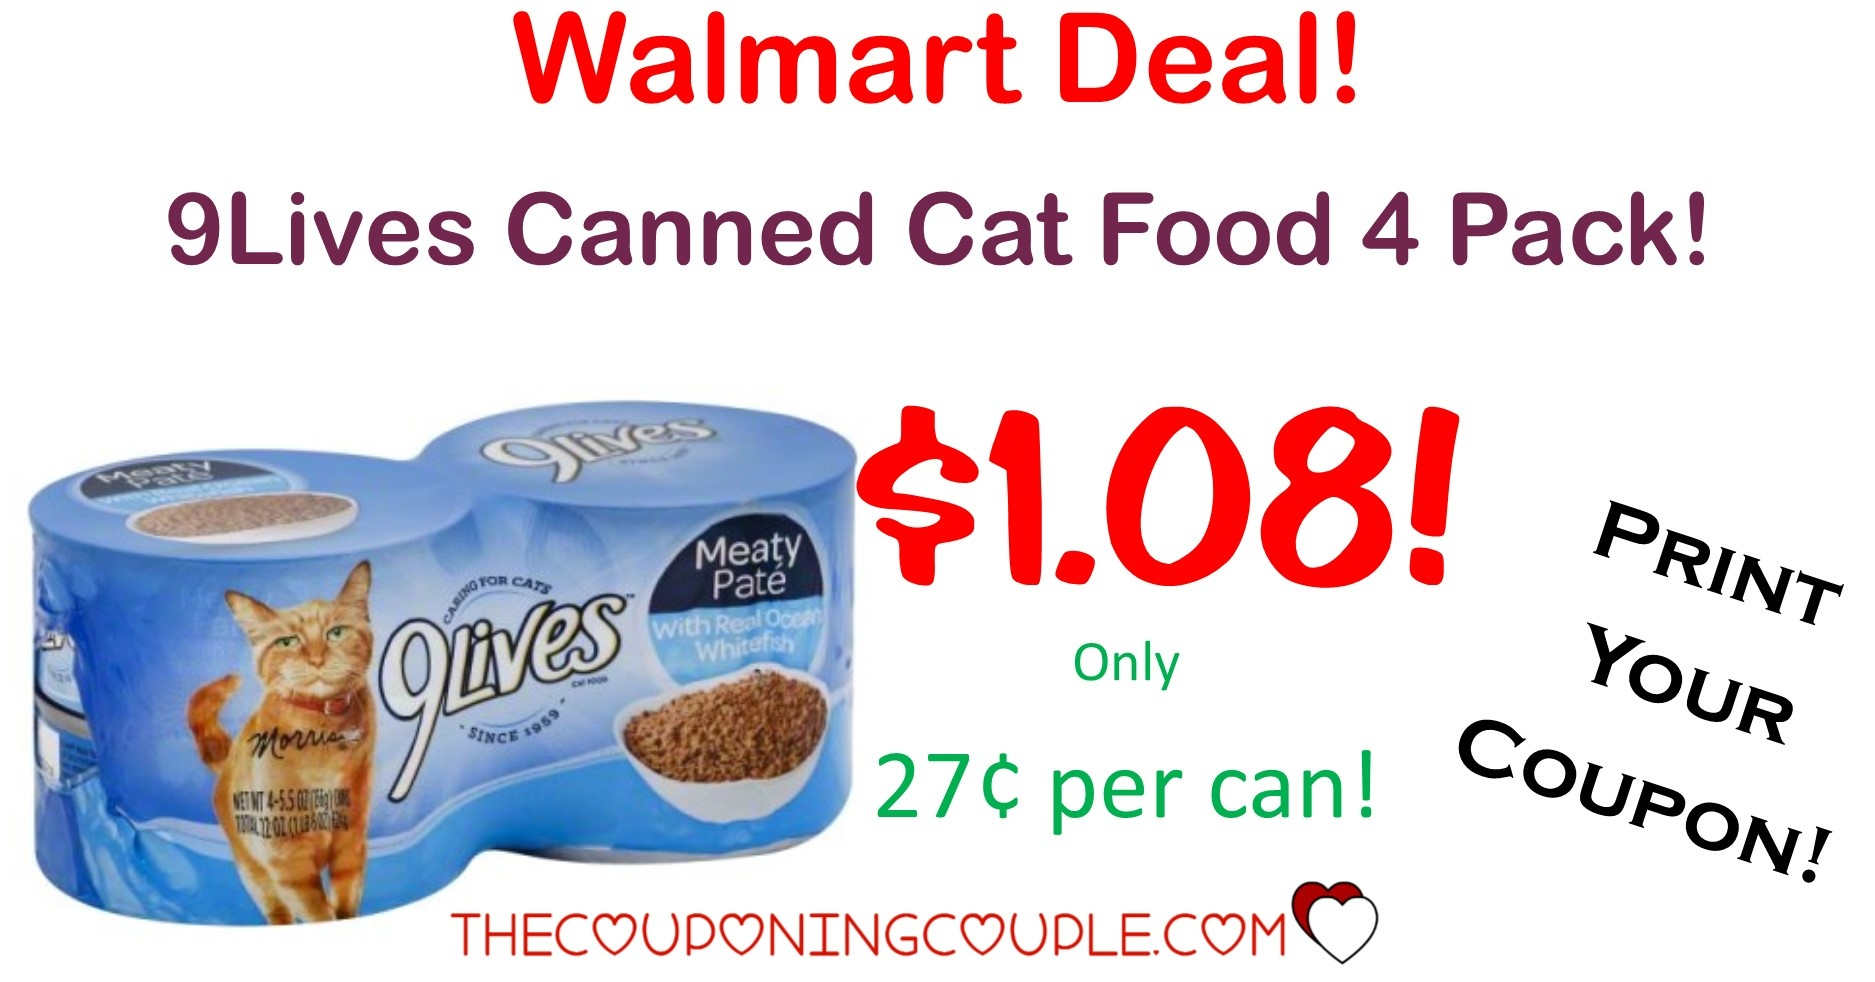 9Lives Canned Cat Food 4 Pack - Only $1.08 With Walmart Deal! - Free Printable 9 Lives Cat Food Coupons